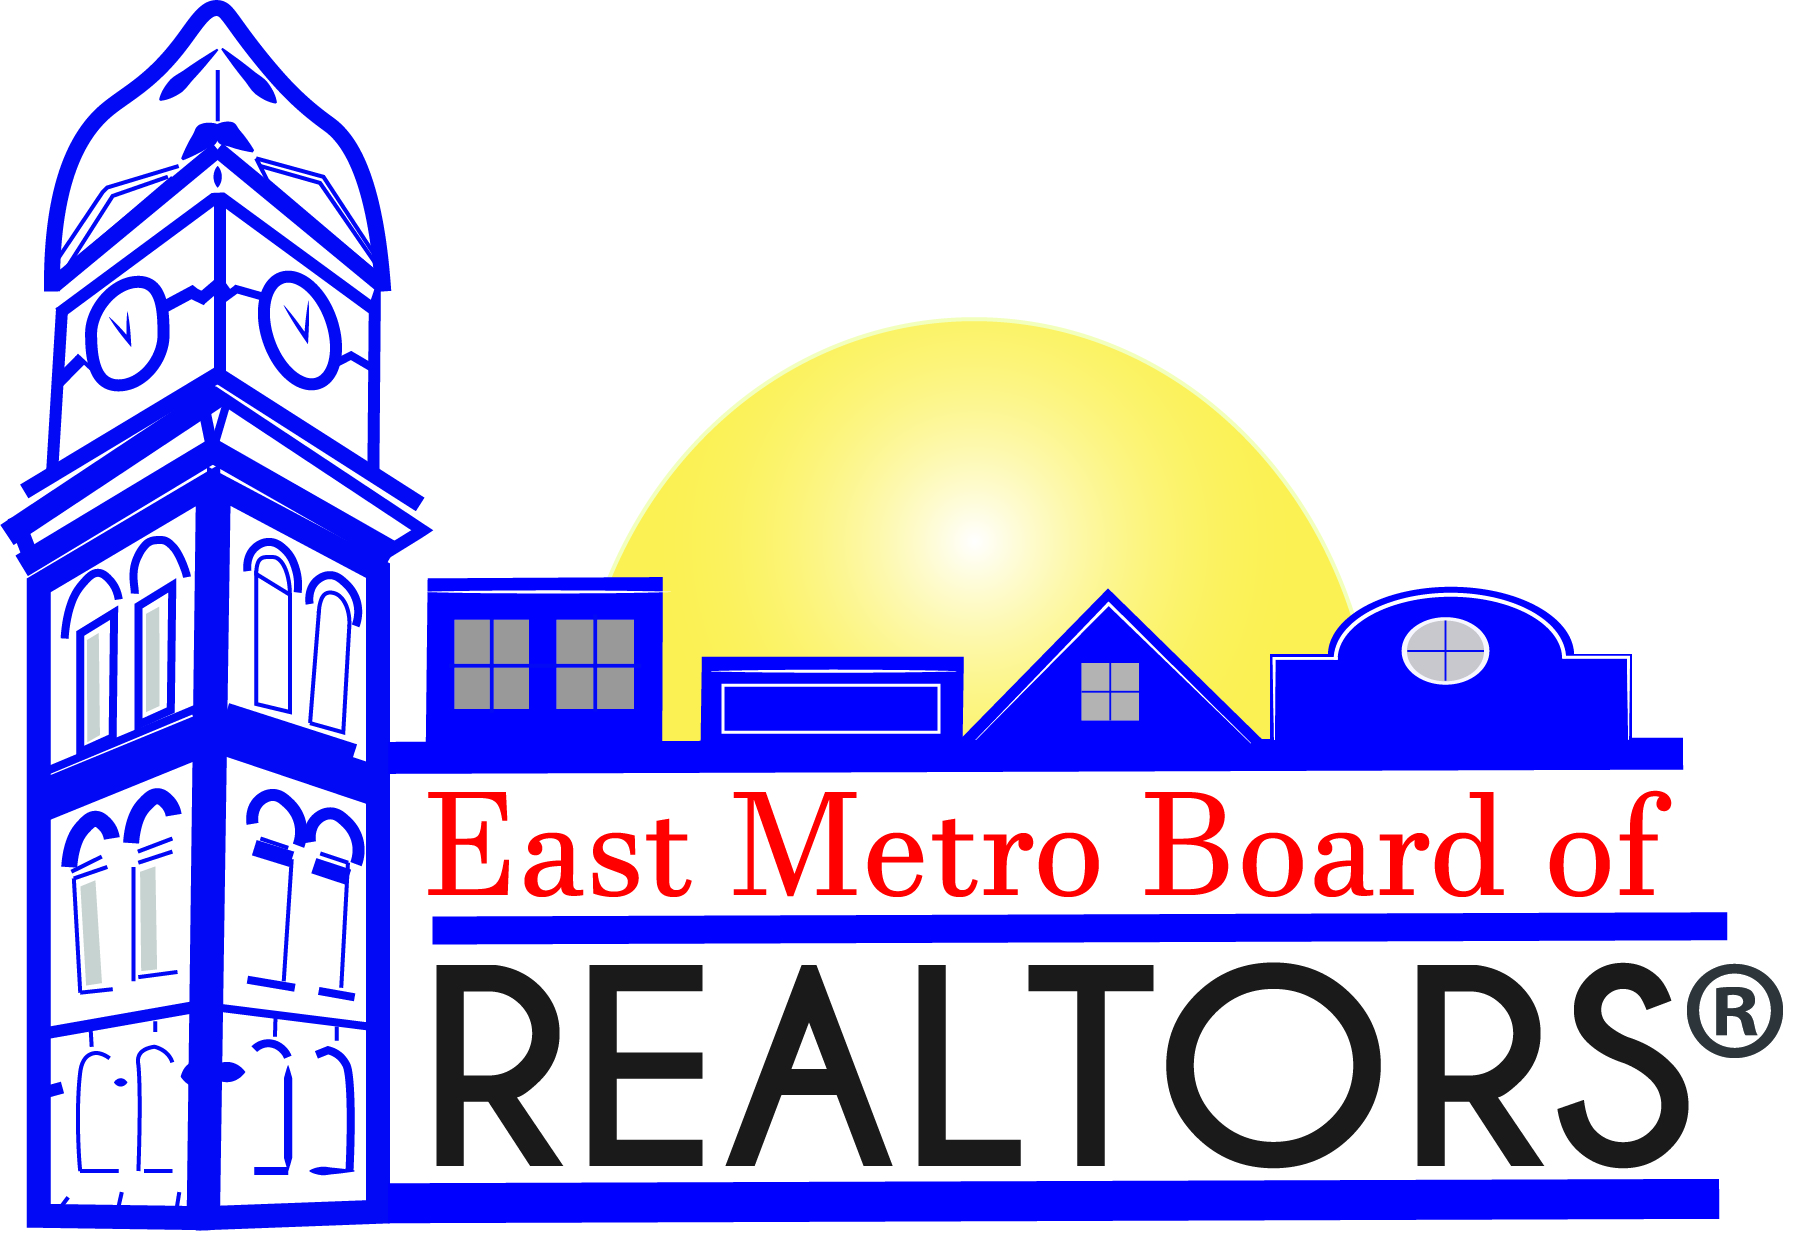 East Metro Board of Realtors®